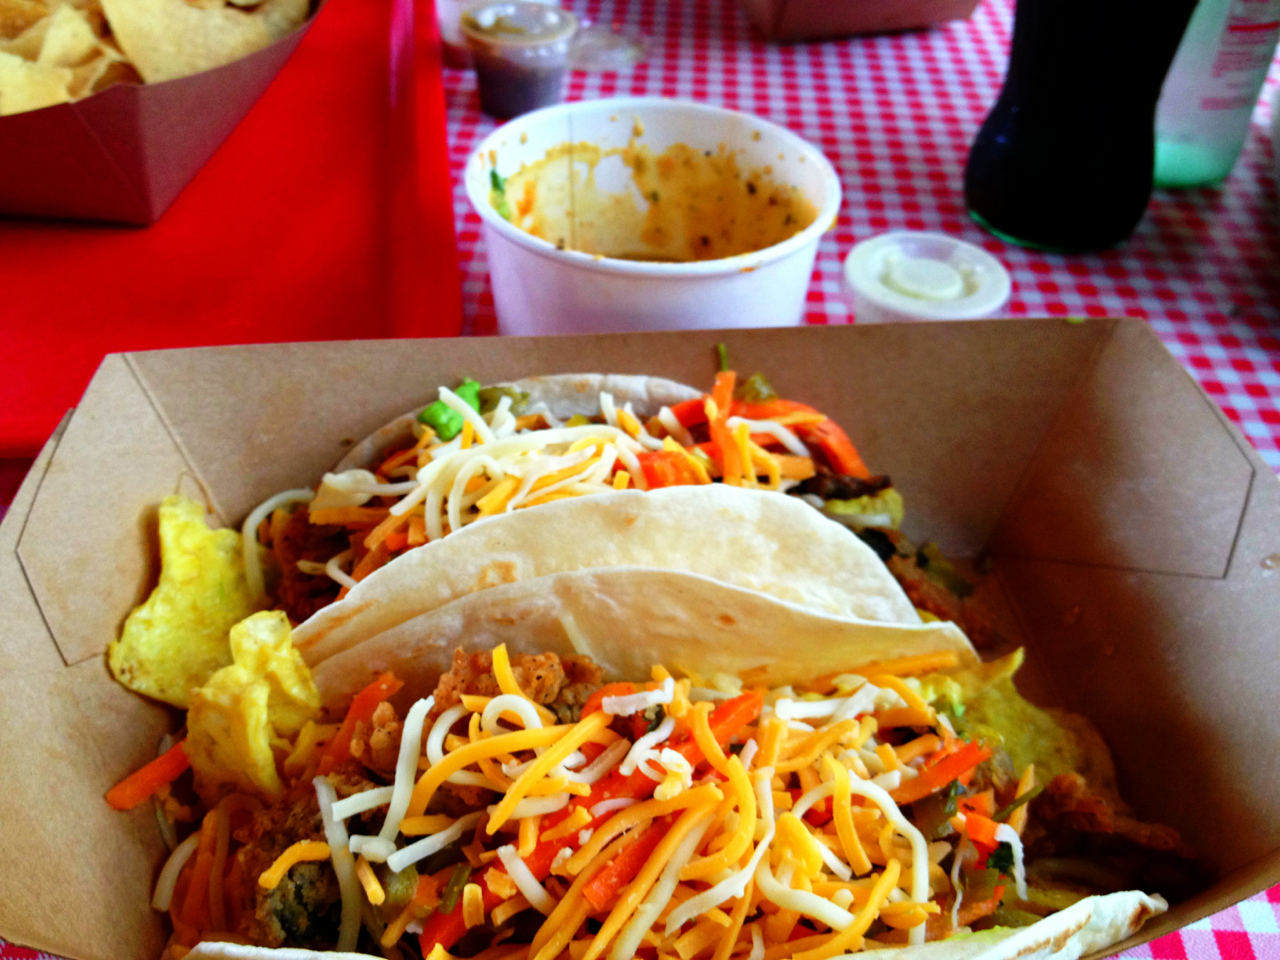 130309, even more specifically, thrilled to be at Torchy's Tacos.